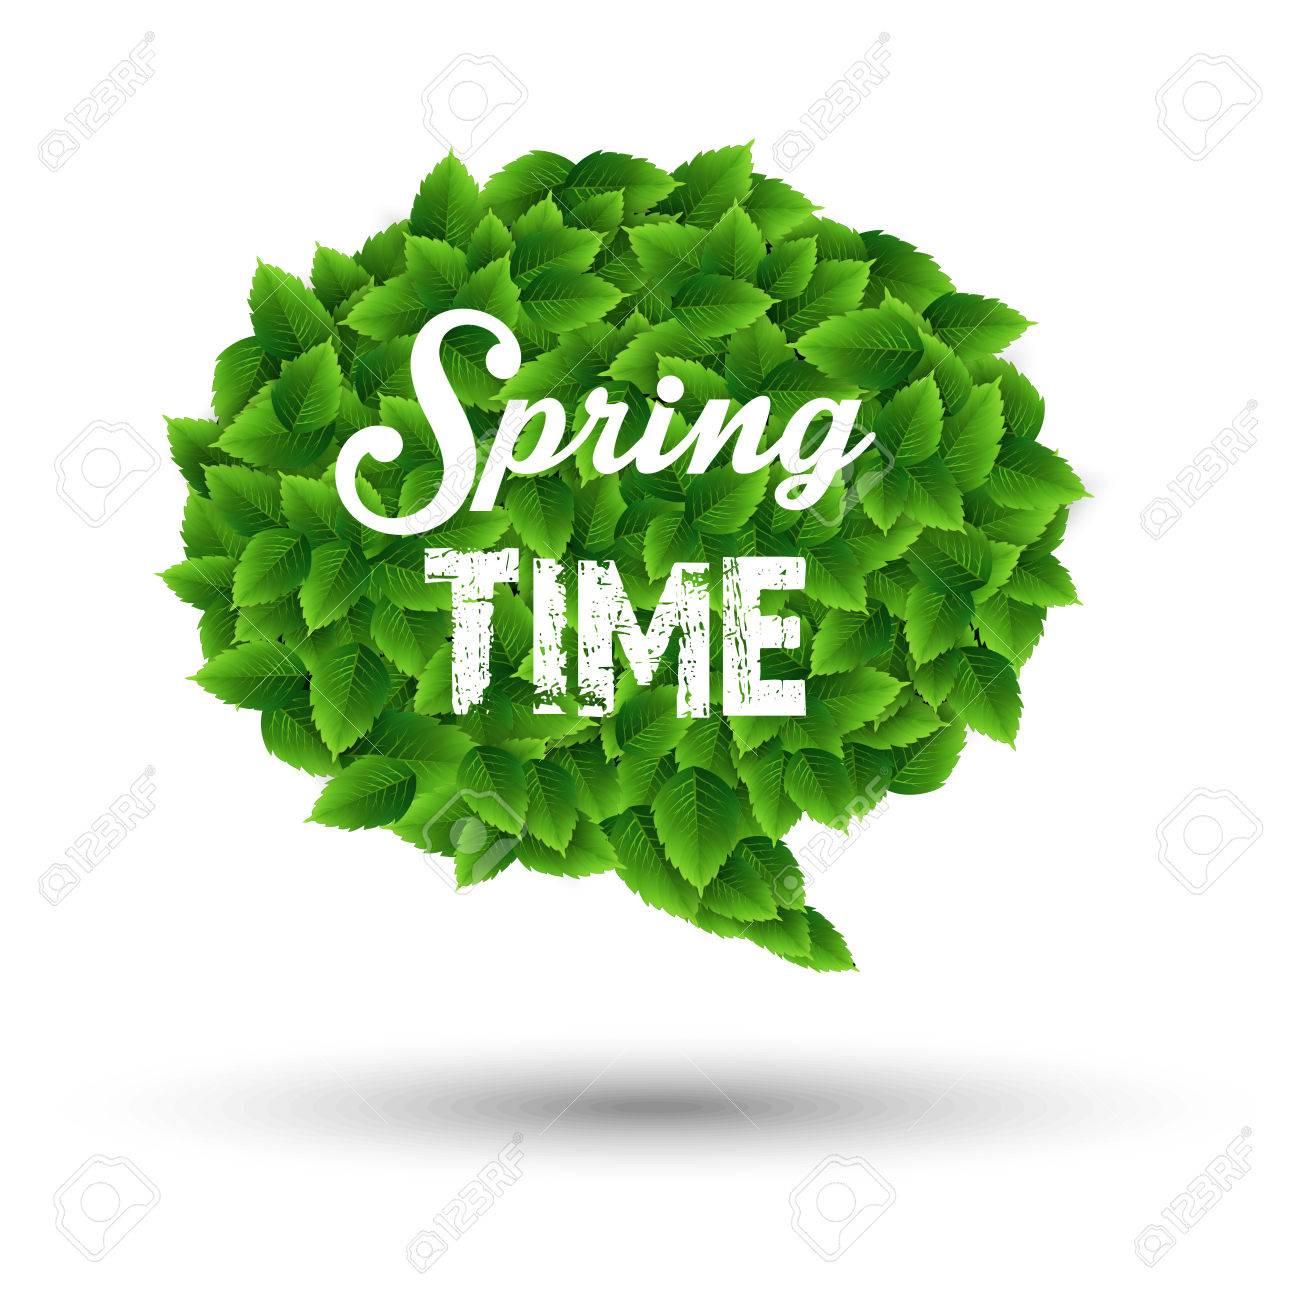 Springtime Greeting In A Speech Bubble Of Green Leaves Stock Photo